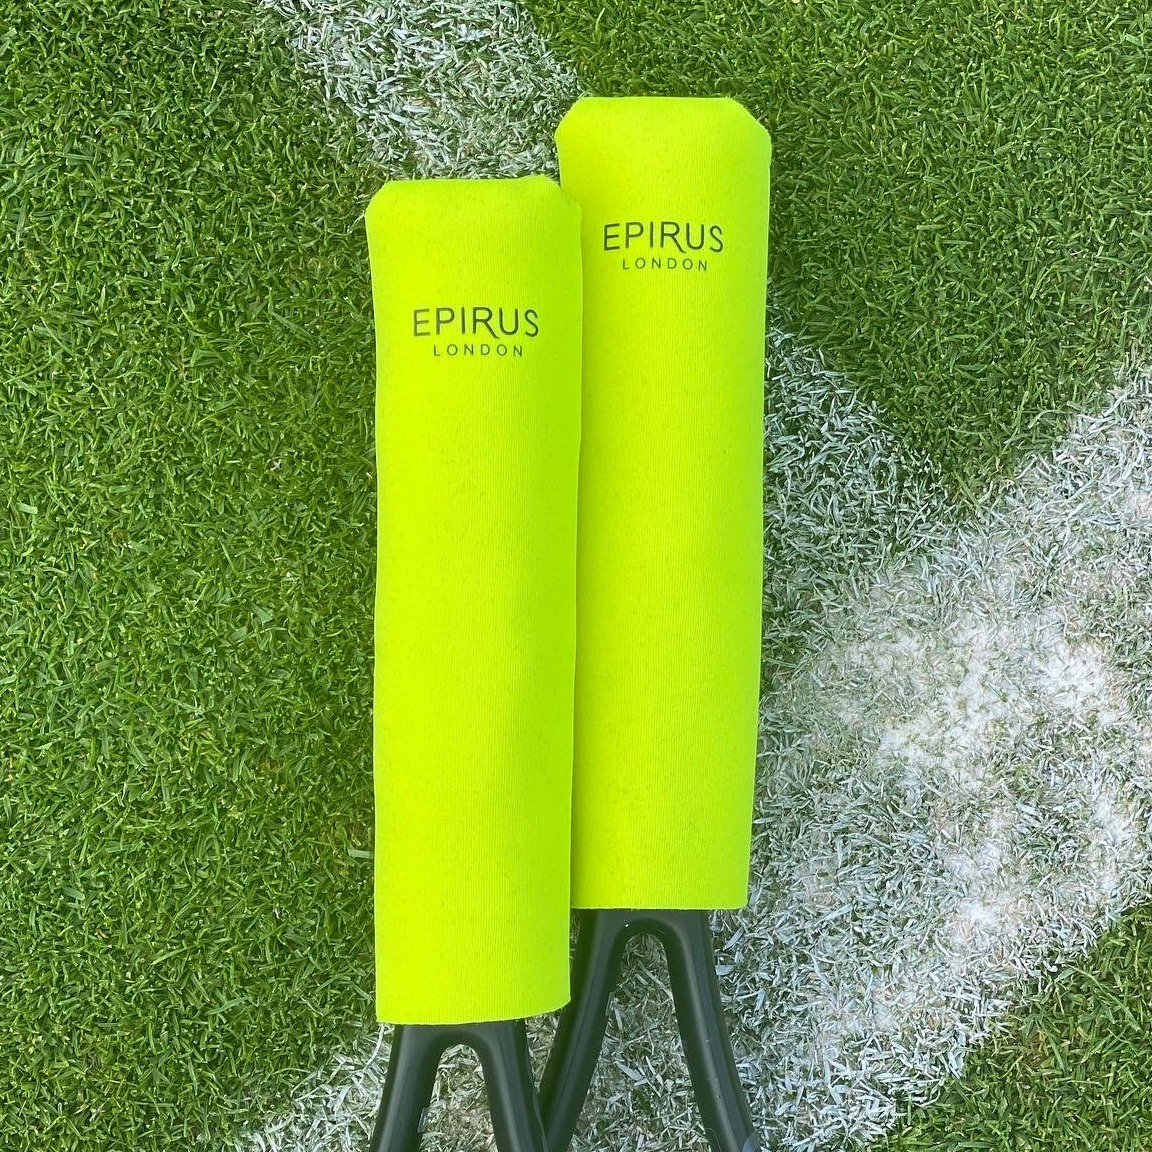 Epirus Neoprene Grip Tennis Grip Covers